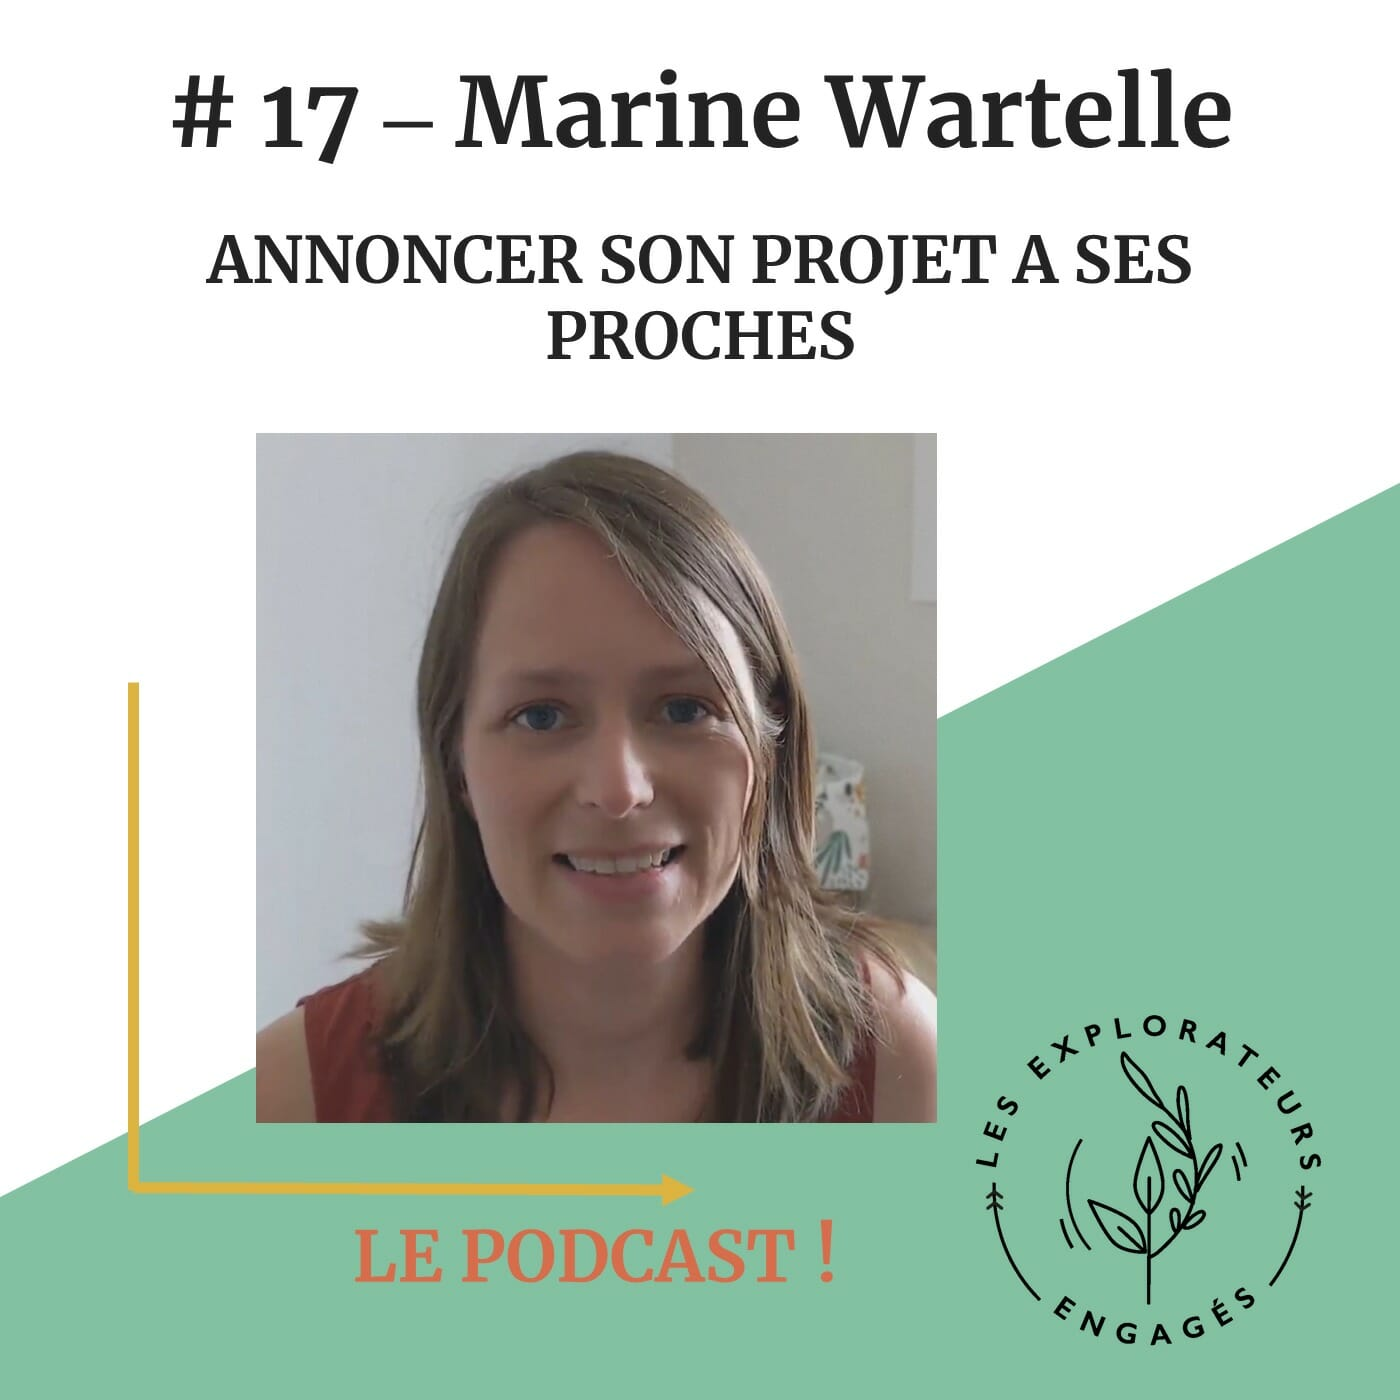 You are currently viewing #17 Marine Wartelle – Annoncer son projet à ses proches